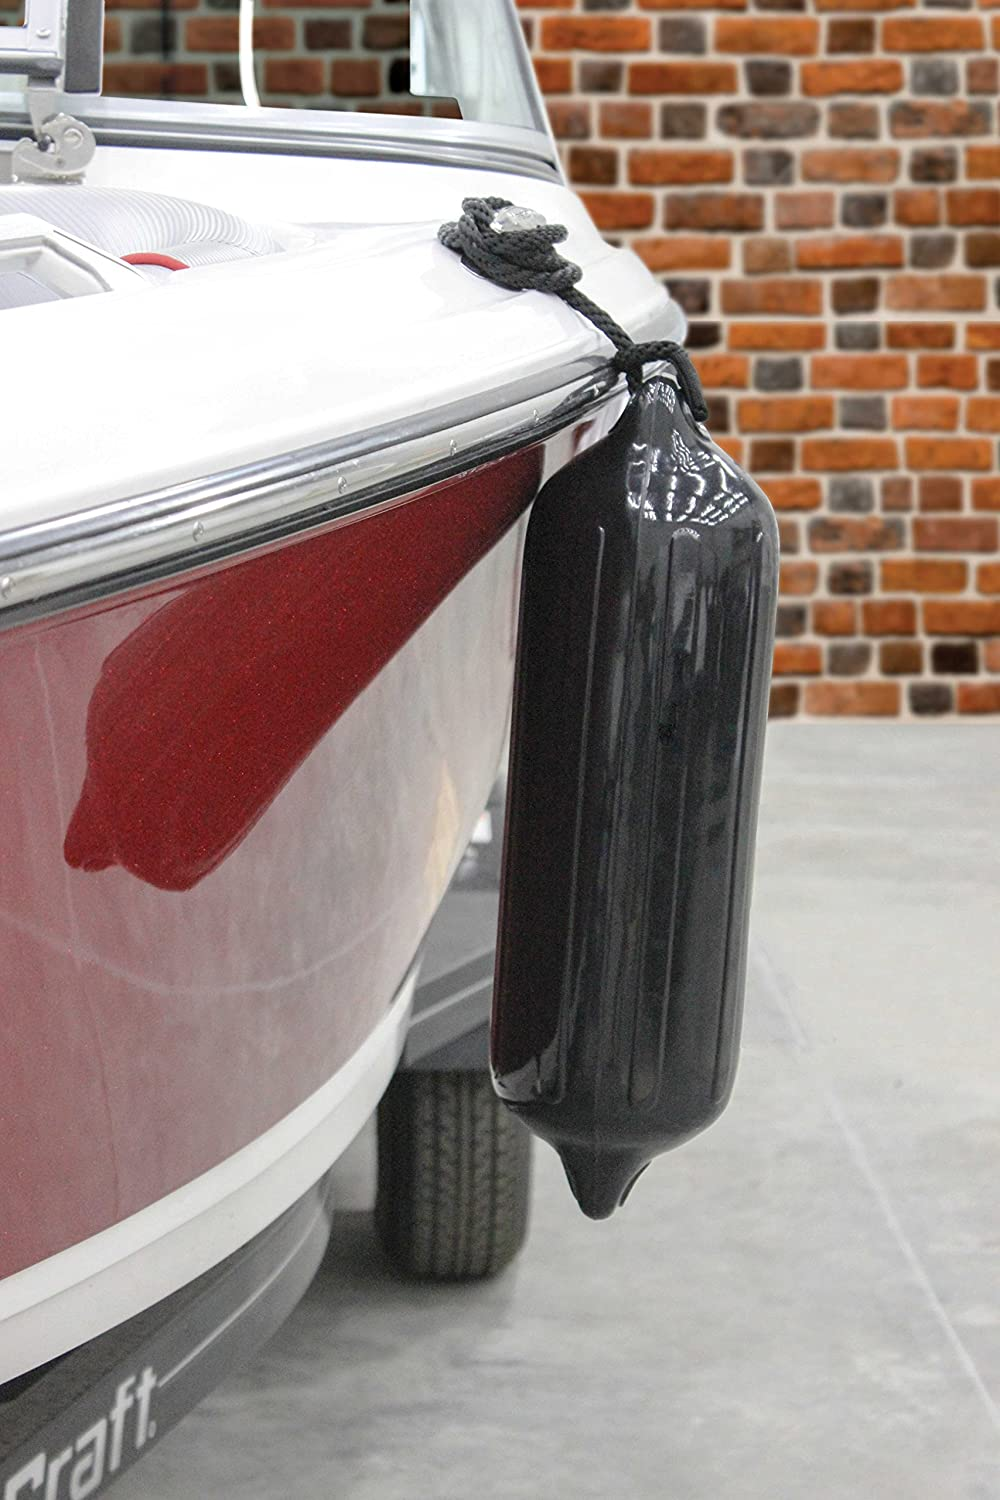 """Bright Red Extreme Max 3006.7498 BoatTector Fender Value 4-Pack 6.5 x 22/"""""""